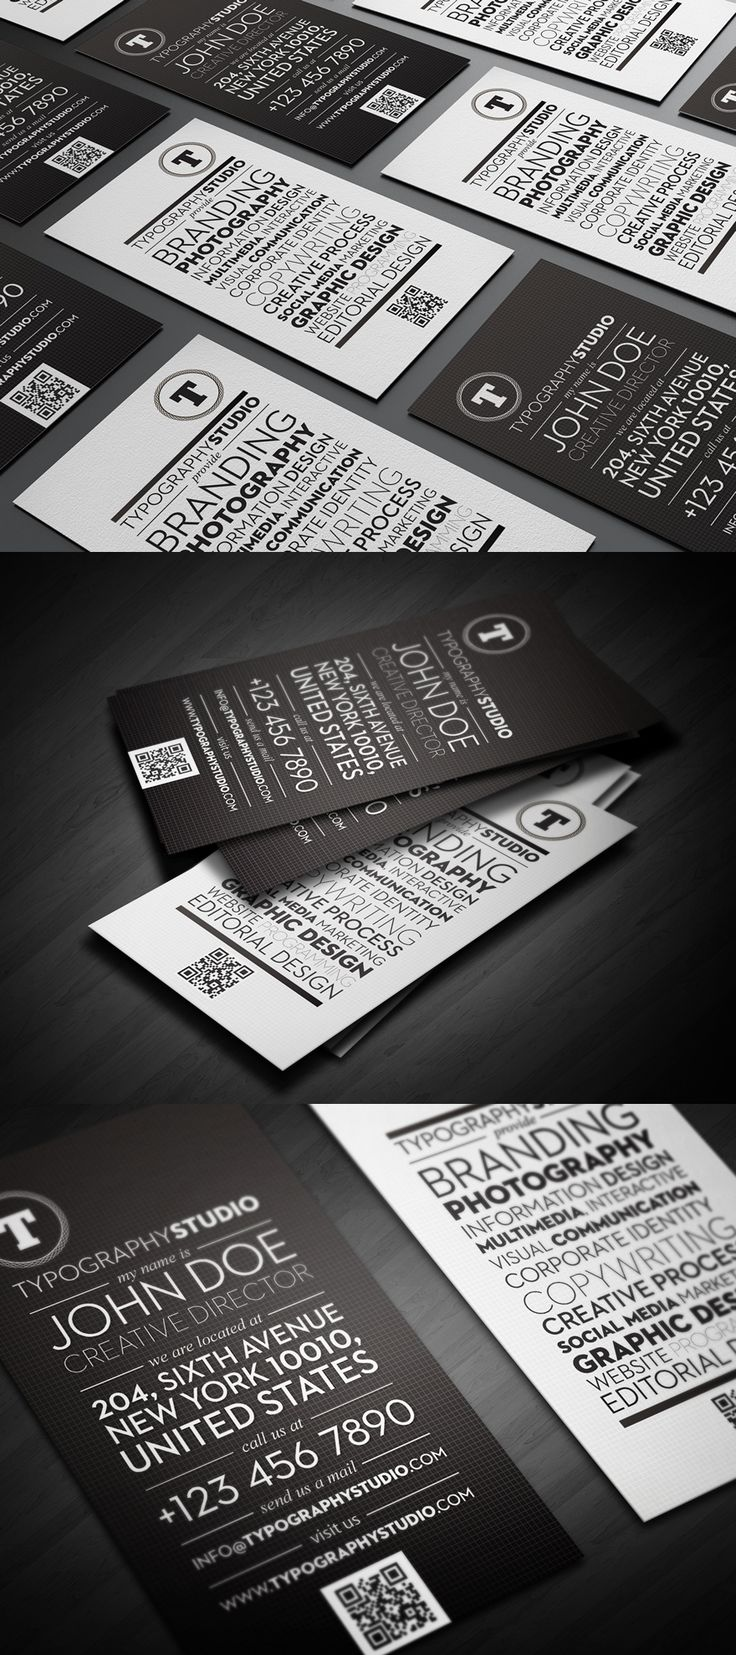 Typography Studio – Business cards, subtle grid application is tight, along with the typography.